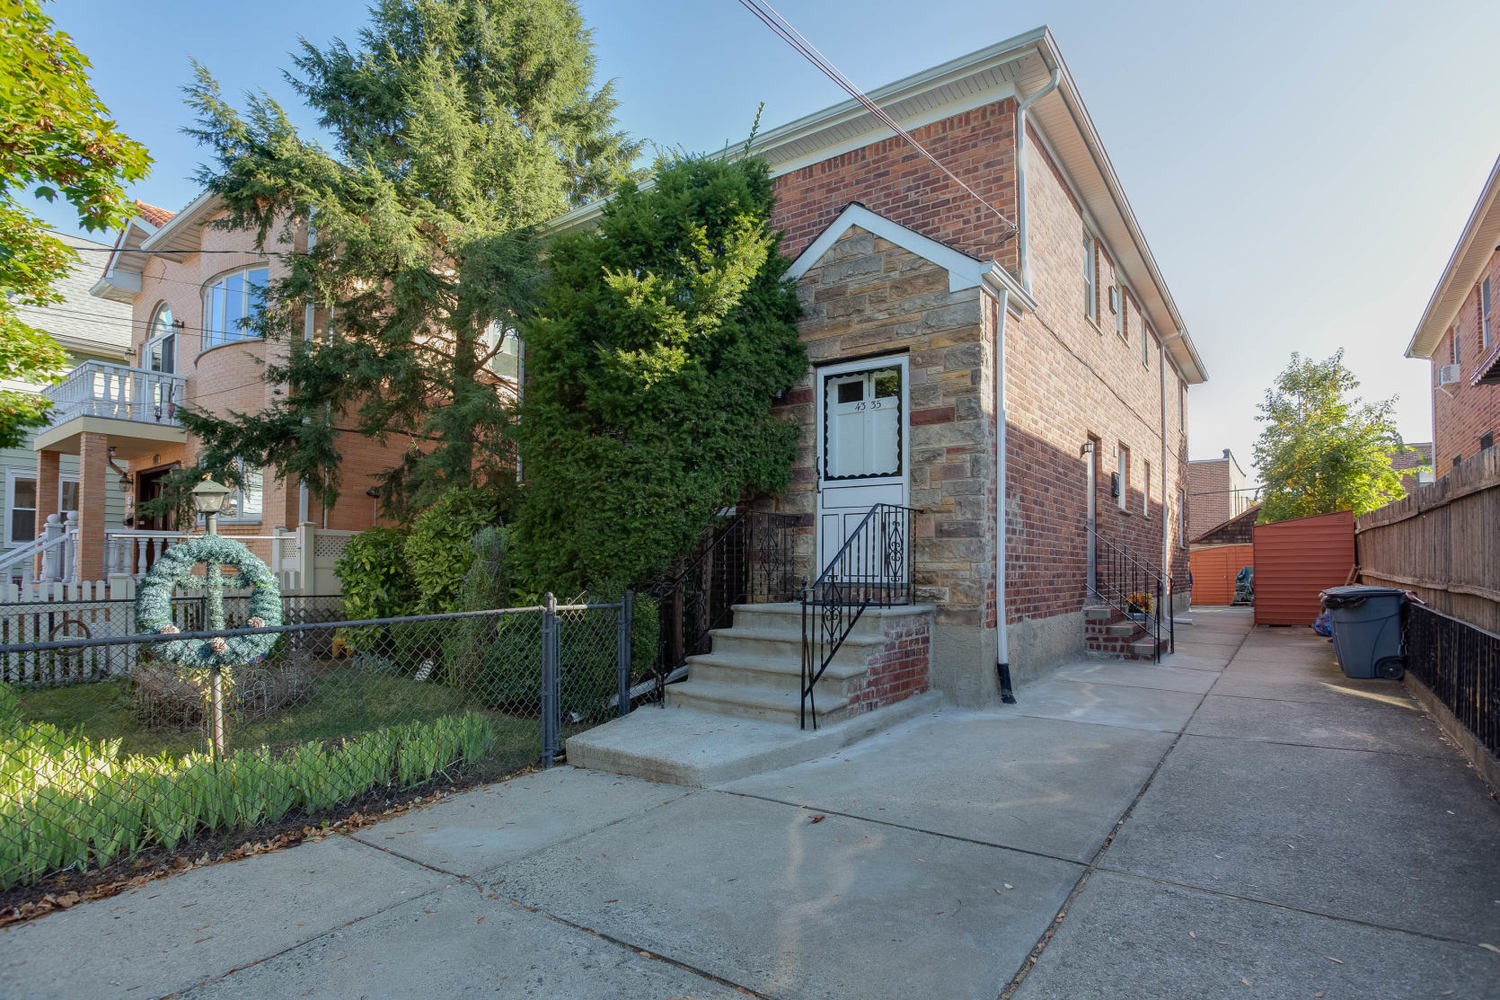 43-35 159th Street Queens, NY 11358